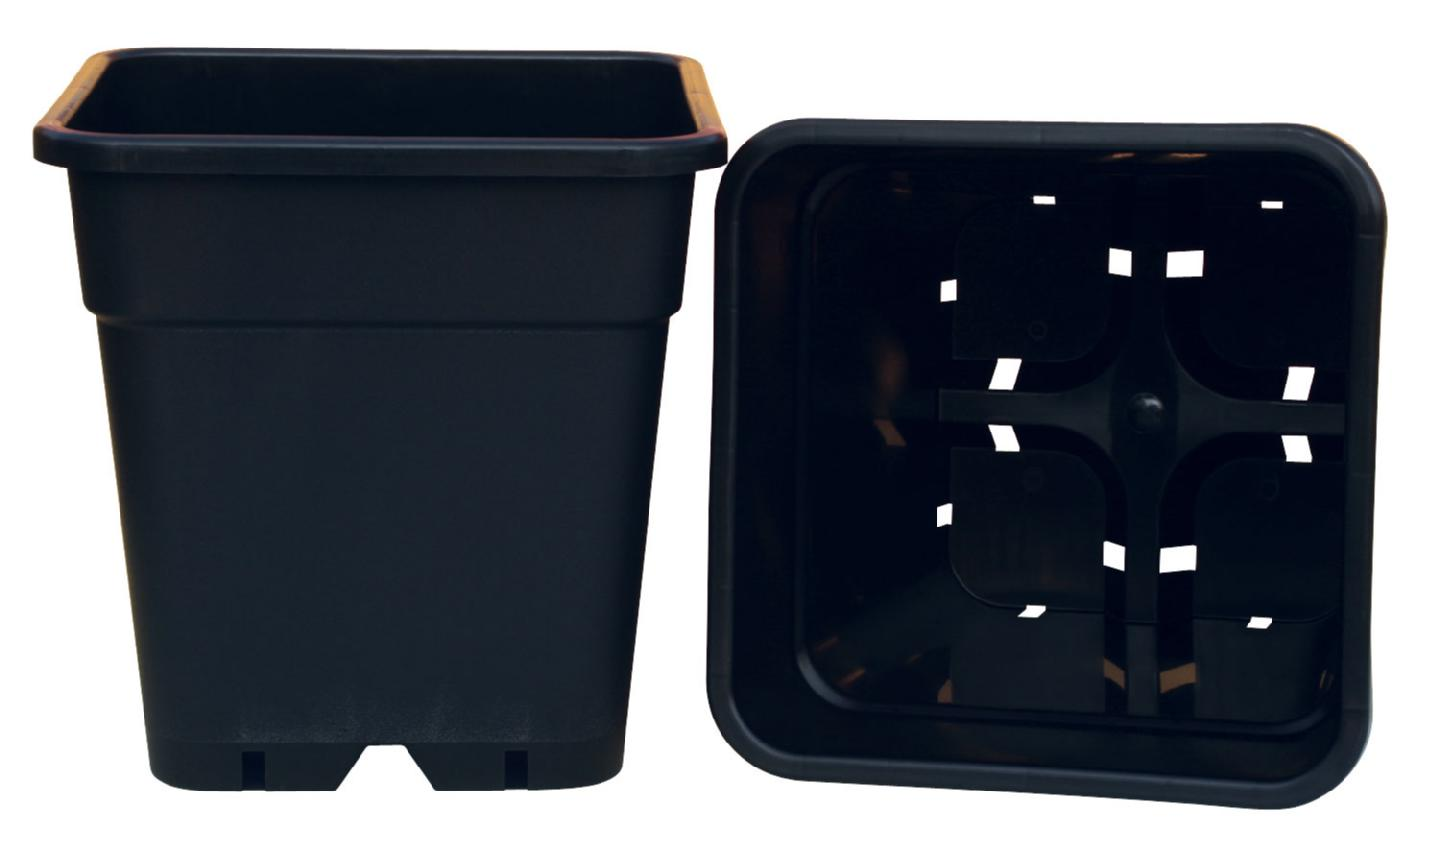 "THE GIANT POT SQUARE - 12"" X 12"" TOP / 8.5"" X 8.5"" BOTTOM X 12"" HIGH - CAPACITY = 4.75 GALLONS (25/CASE)"